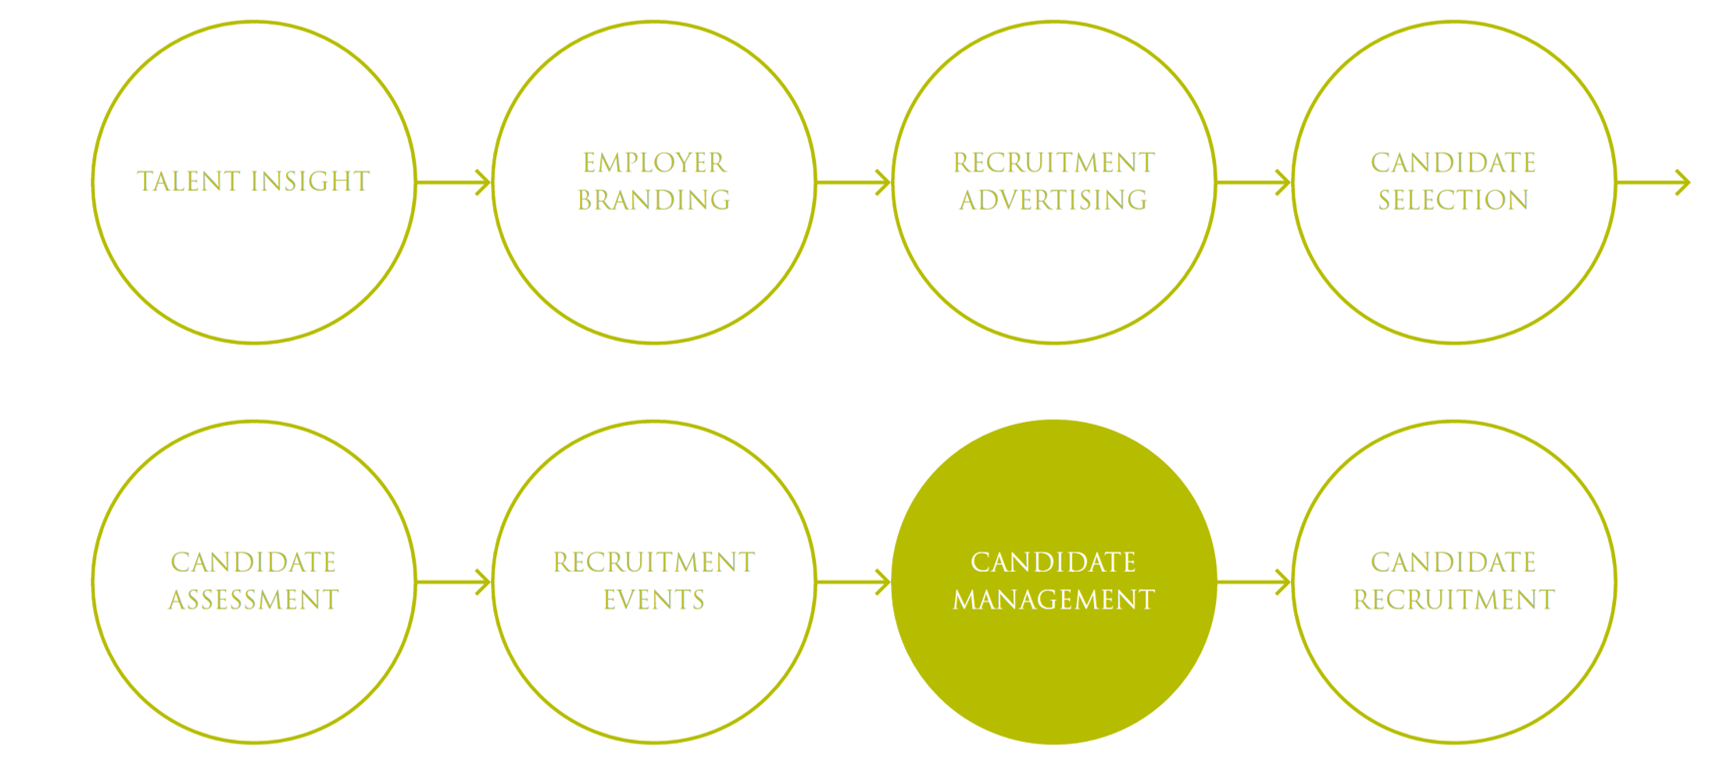 Candidate Management